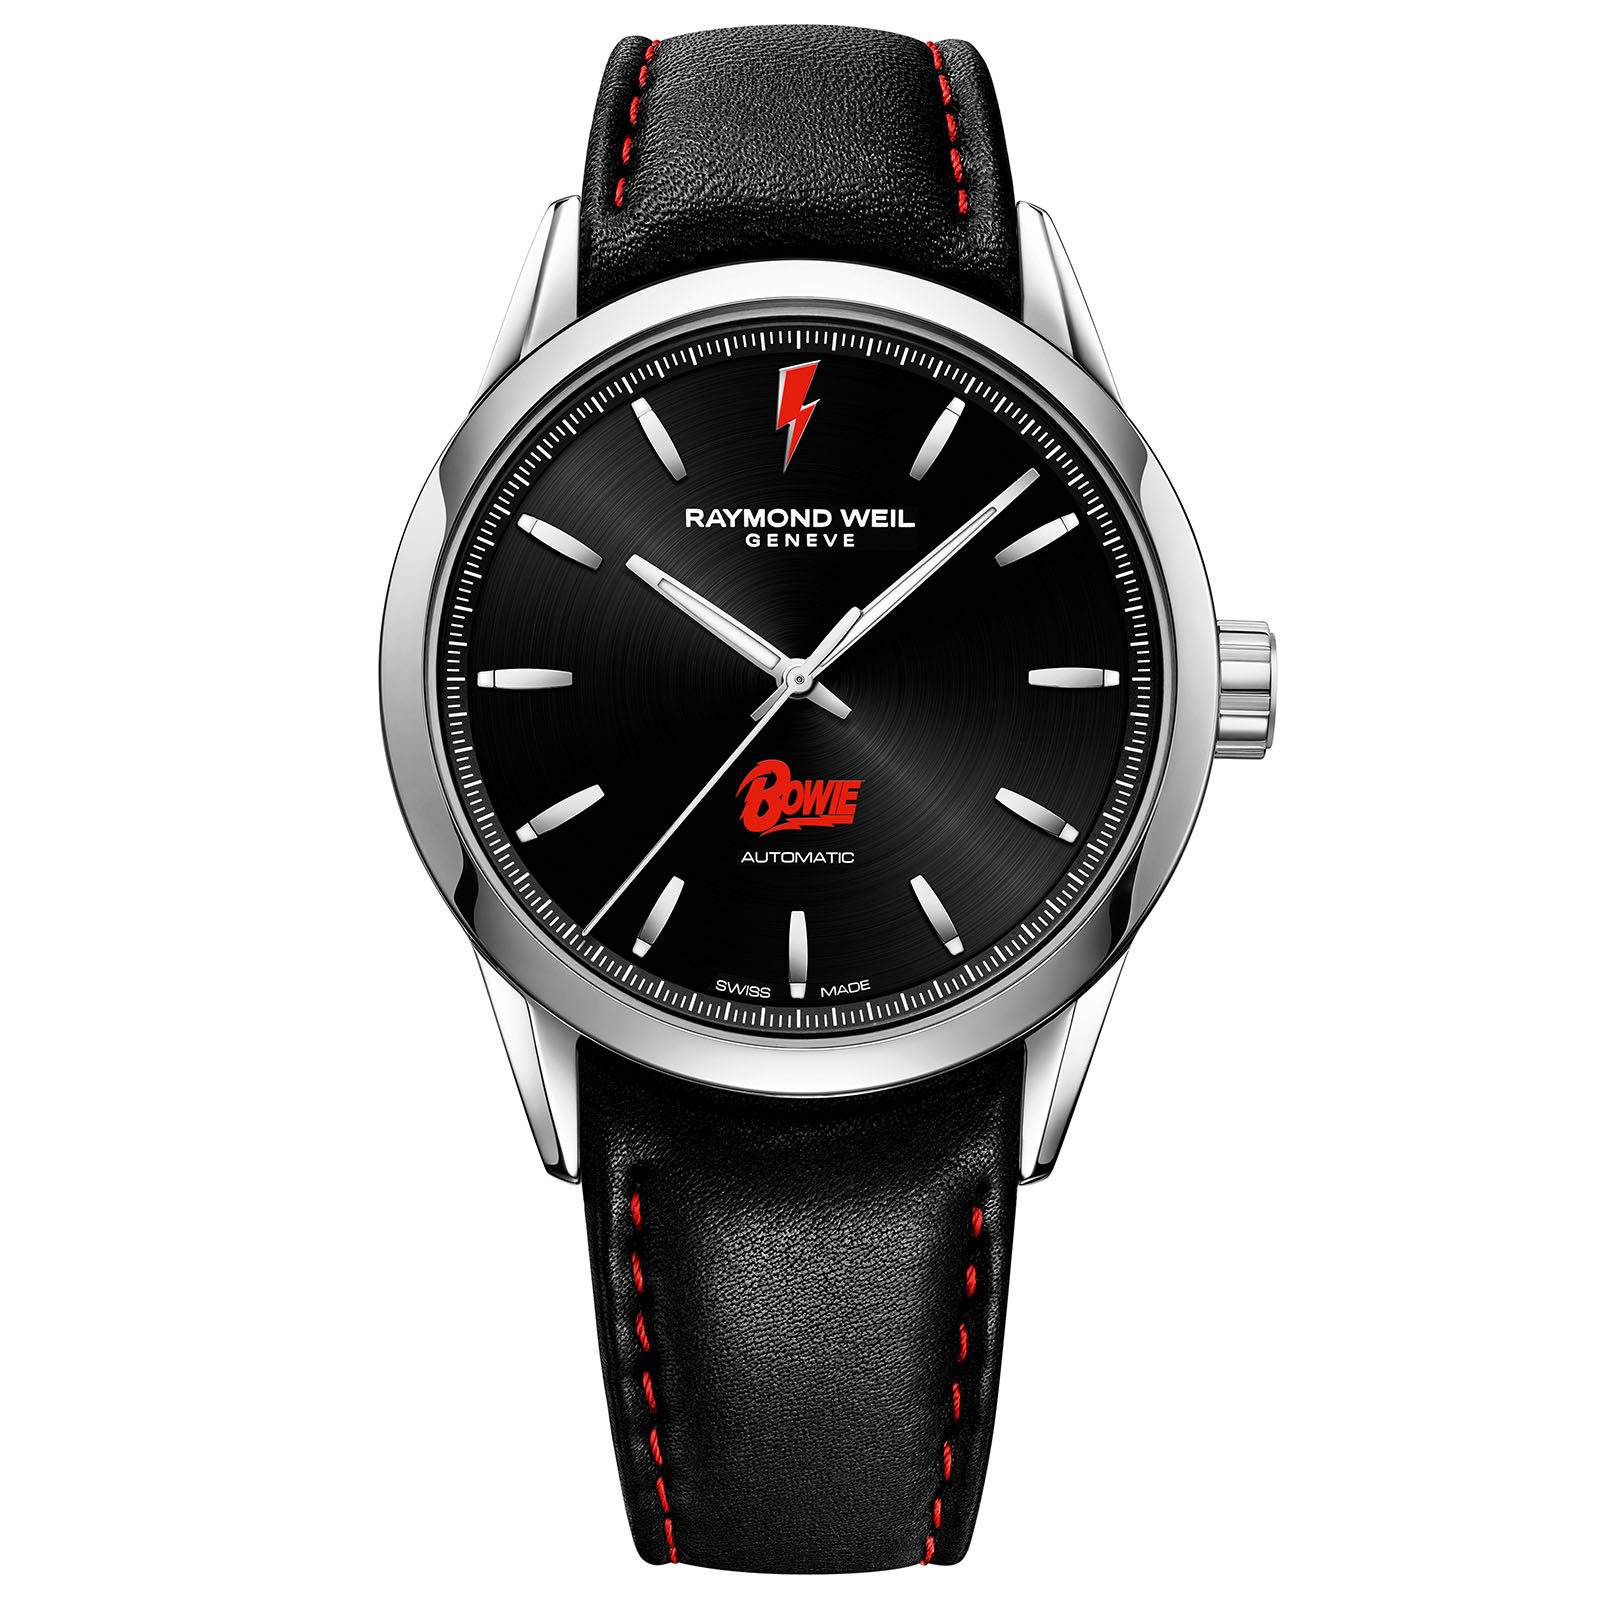 Raymond Weil - FREEANCER BLACK INDEX BOWIE